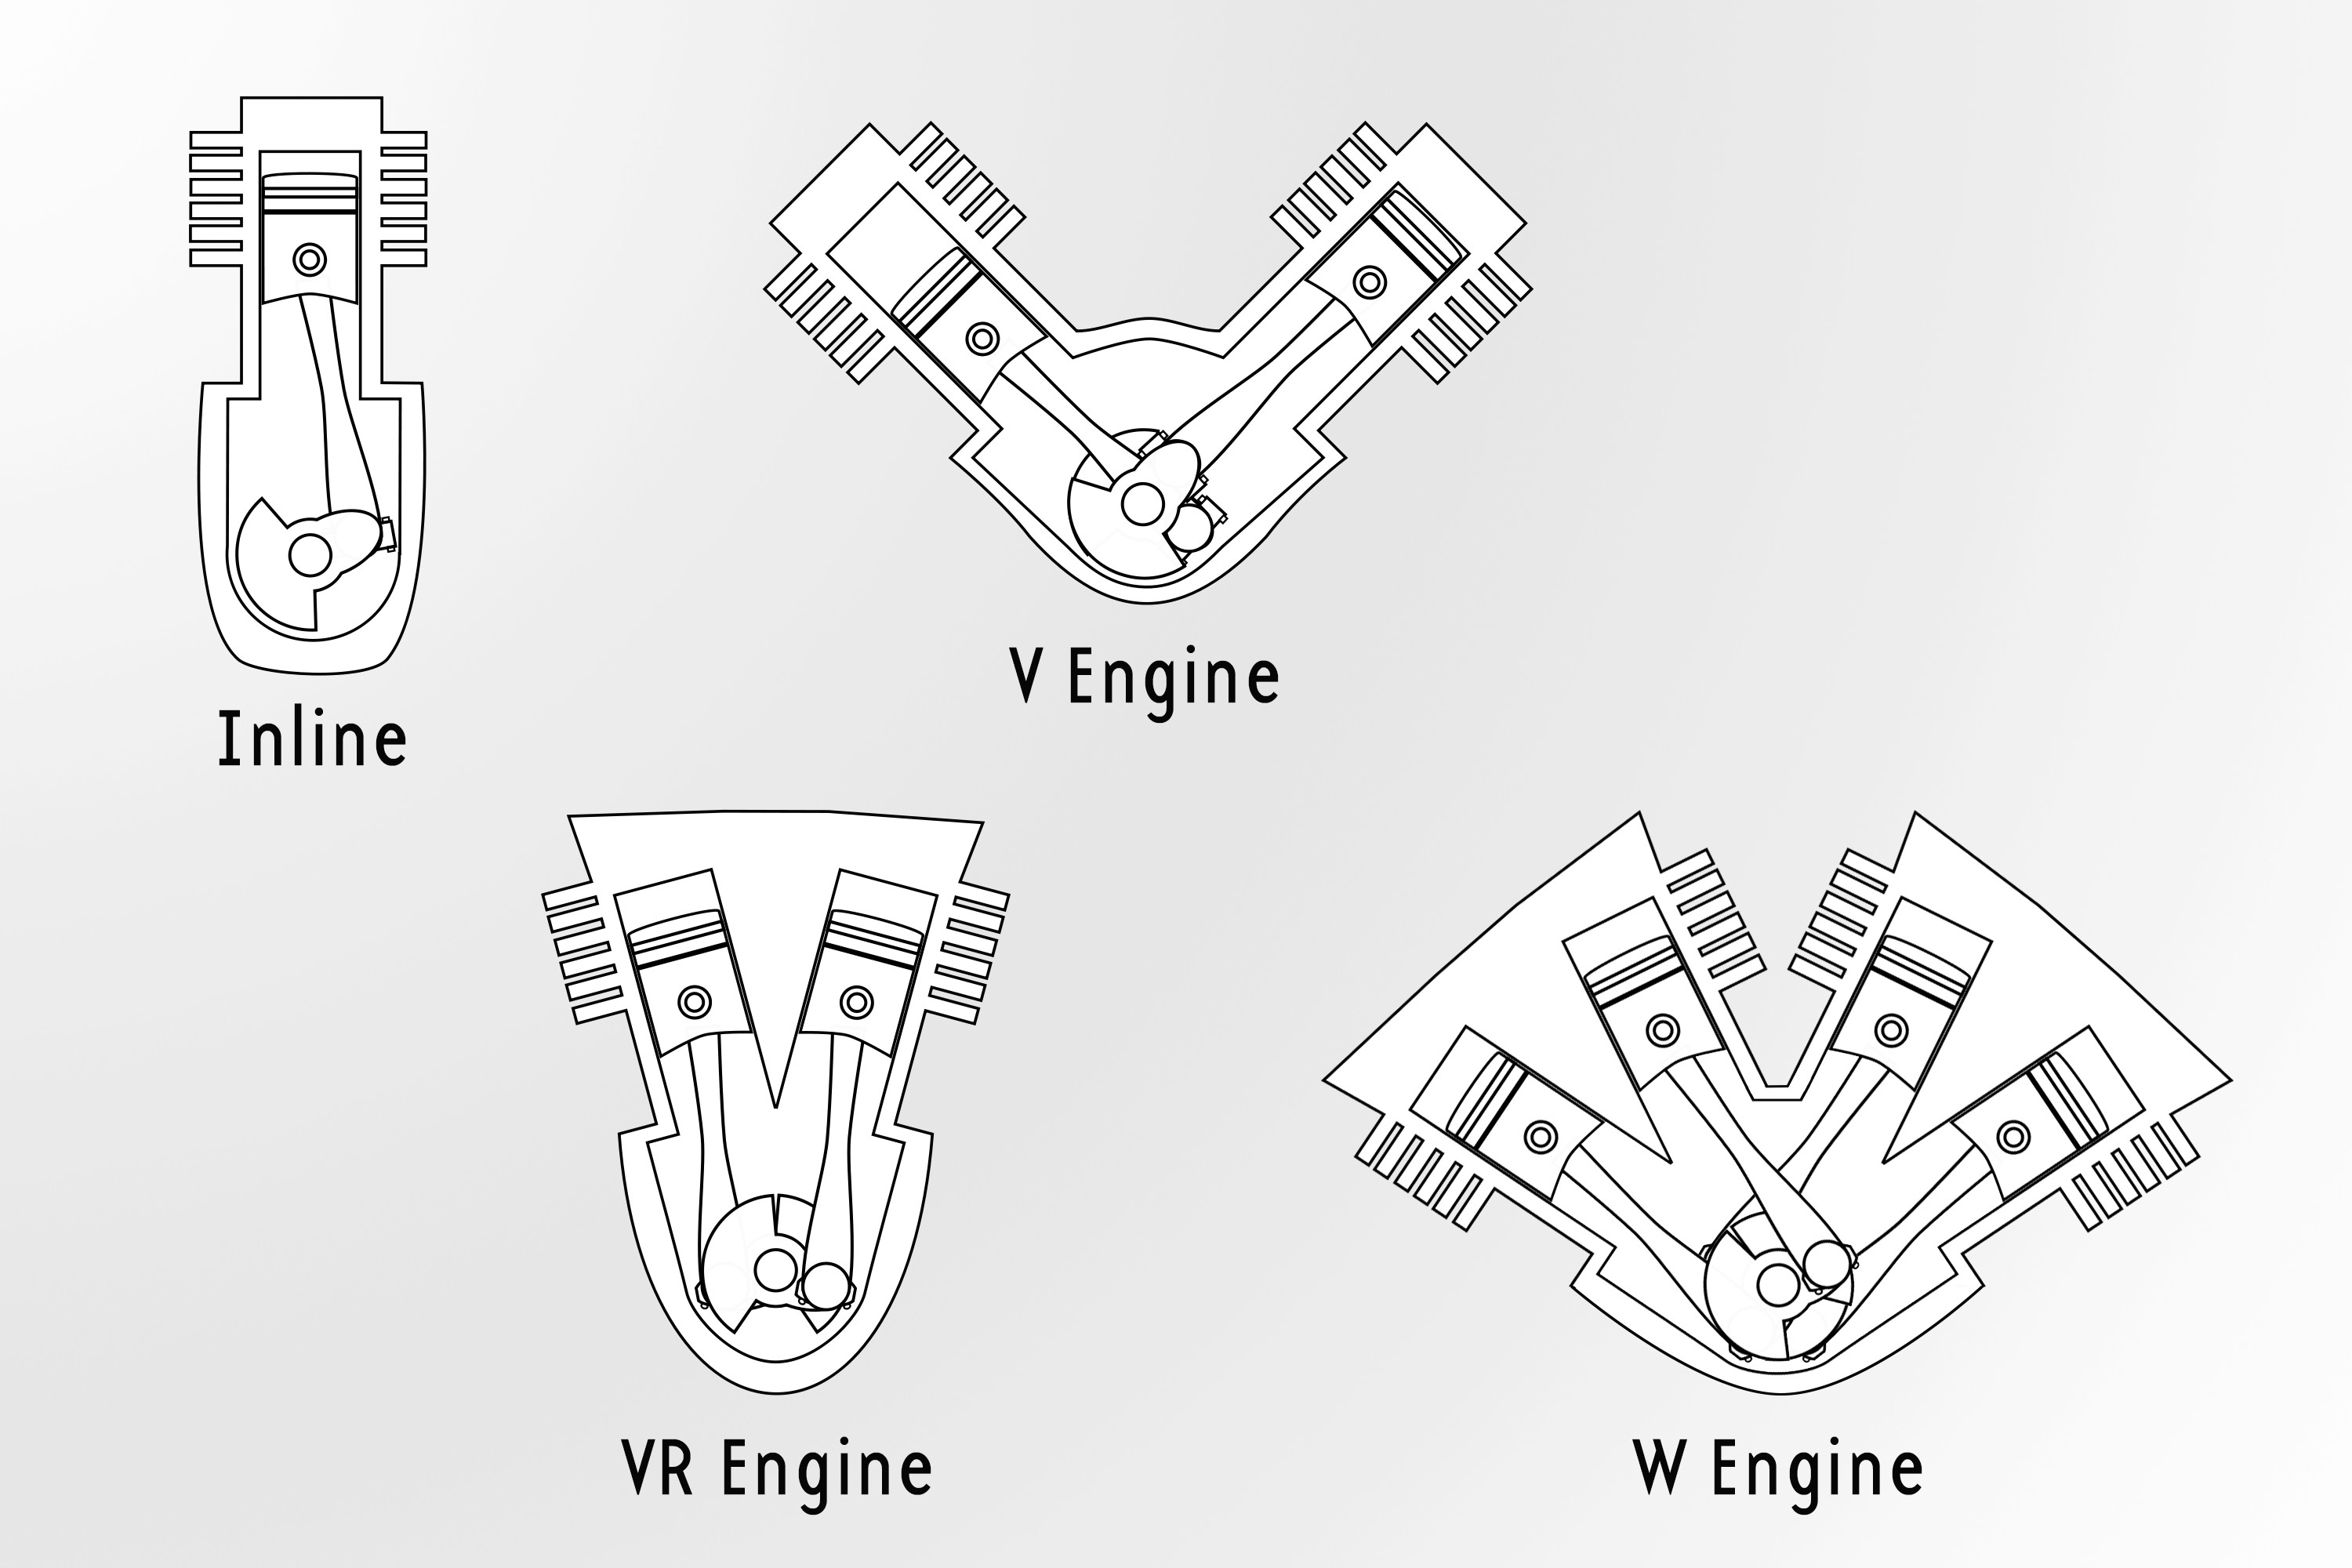 2016 Audi A8 Engine Diagram Bentley W12 2018 My Wiring Bugatti W16 Auto Today Of